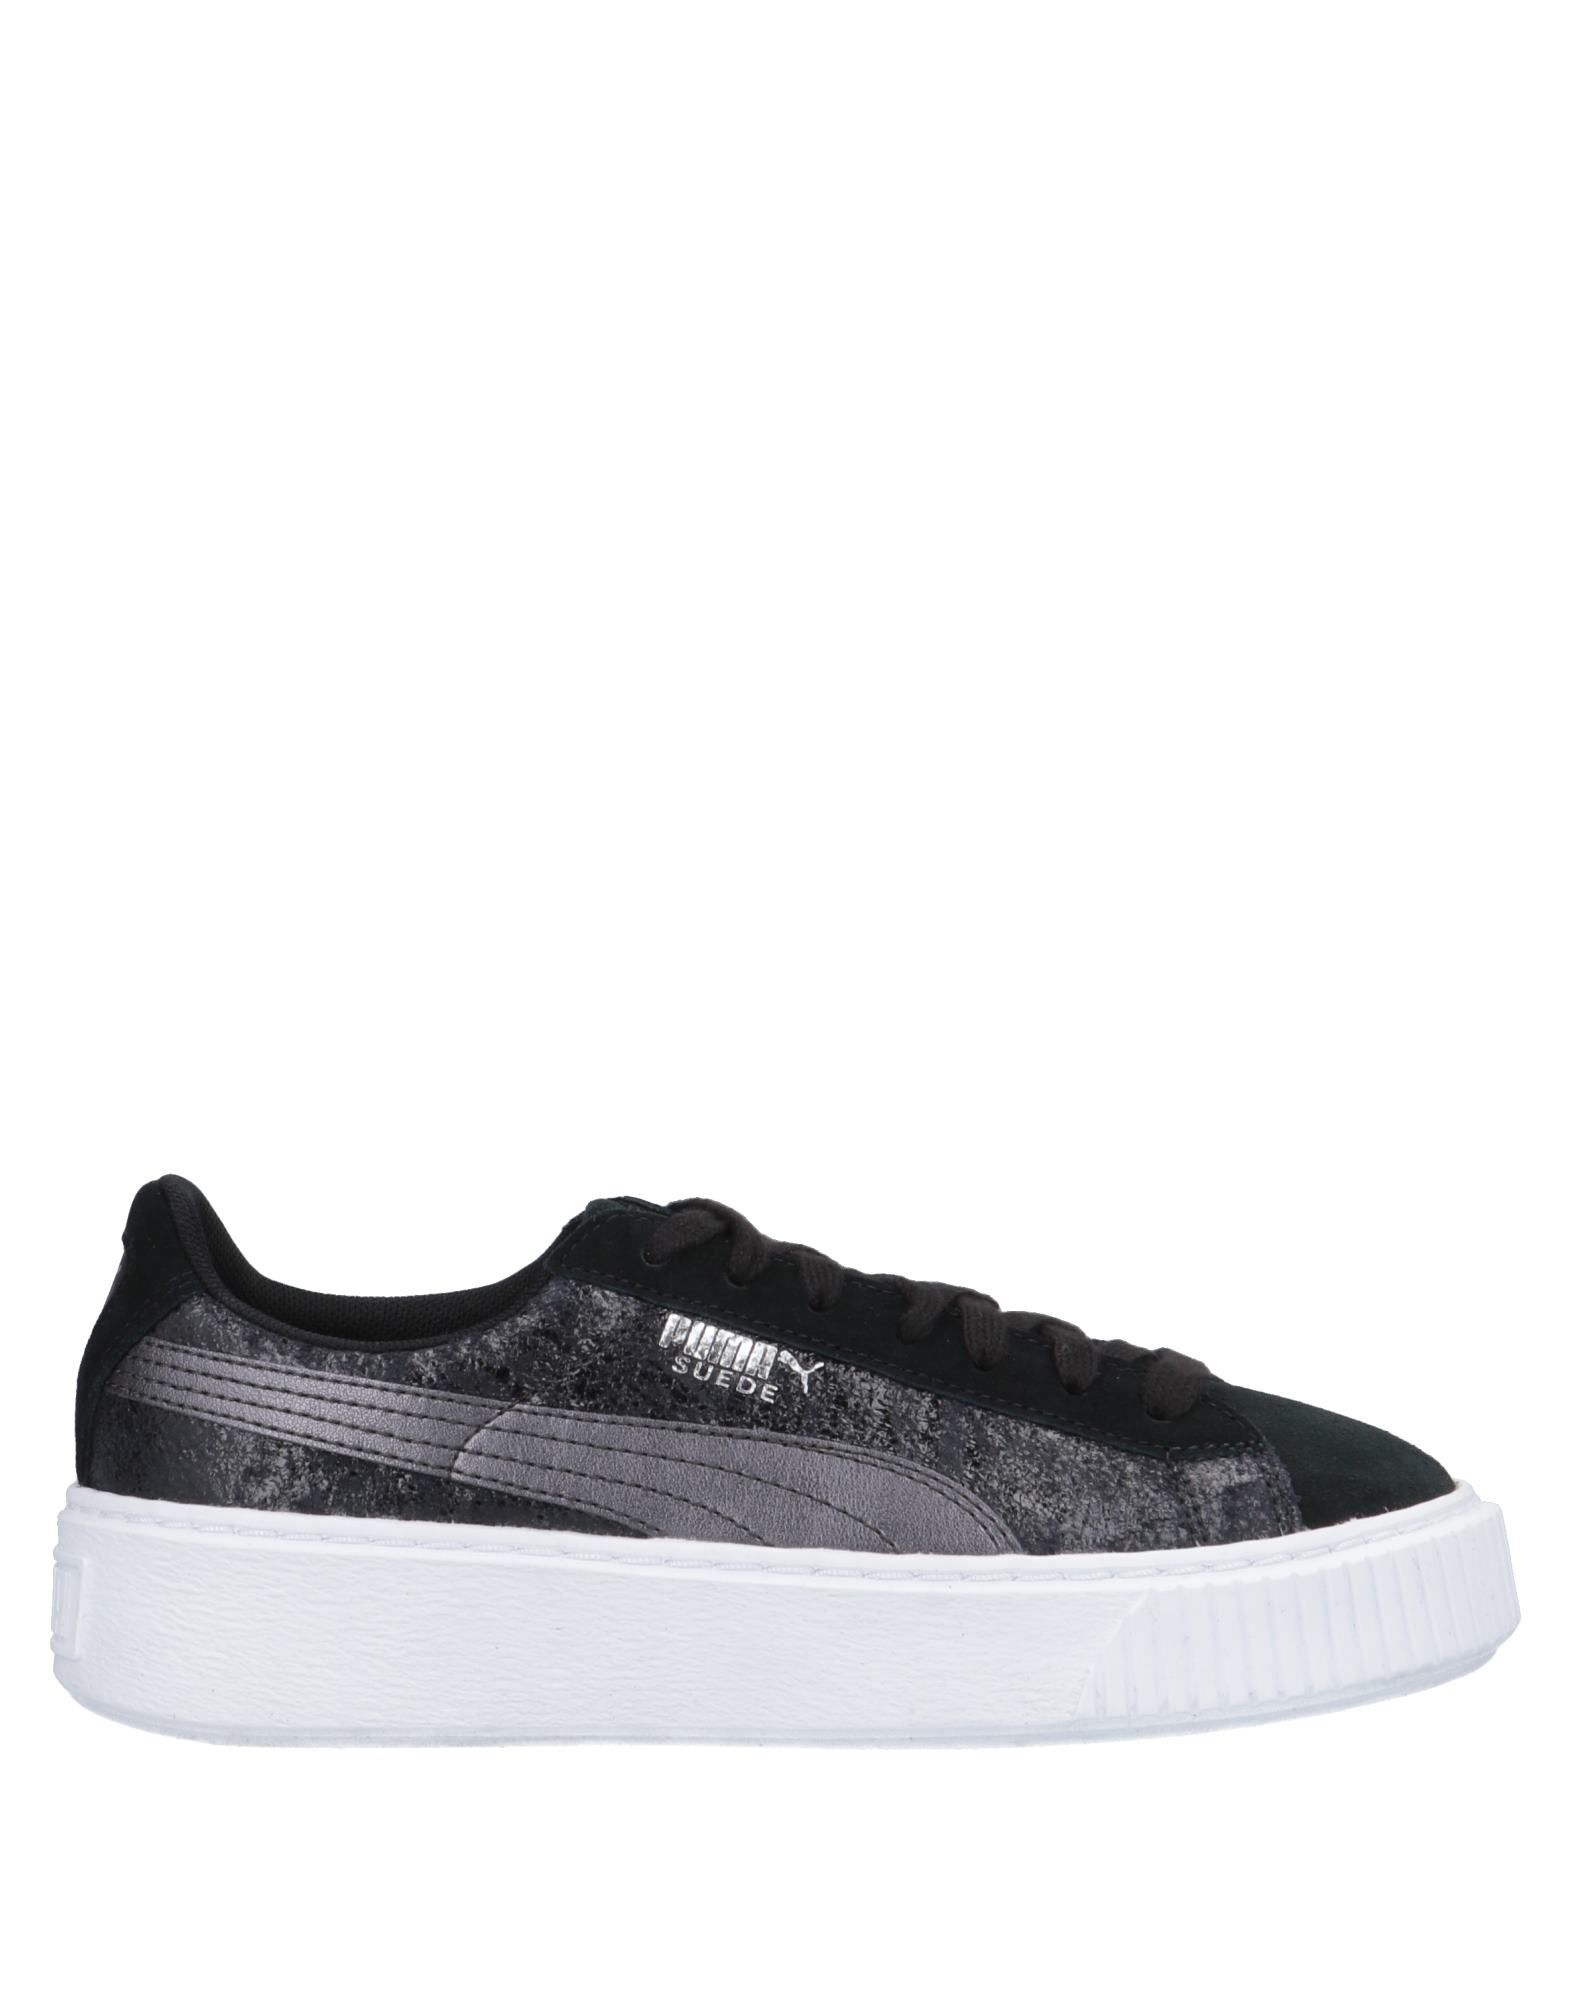 Puma Sneakers - Women Puma Sneakers - online on  Australia - Sneakers 11559428OH 0bb6e9